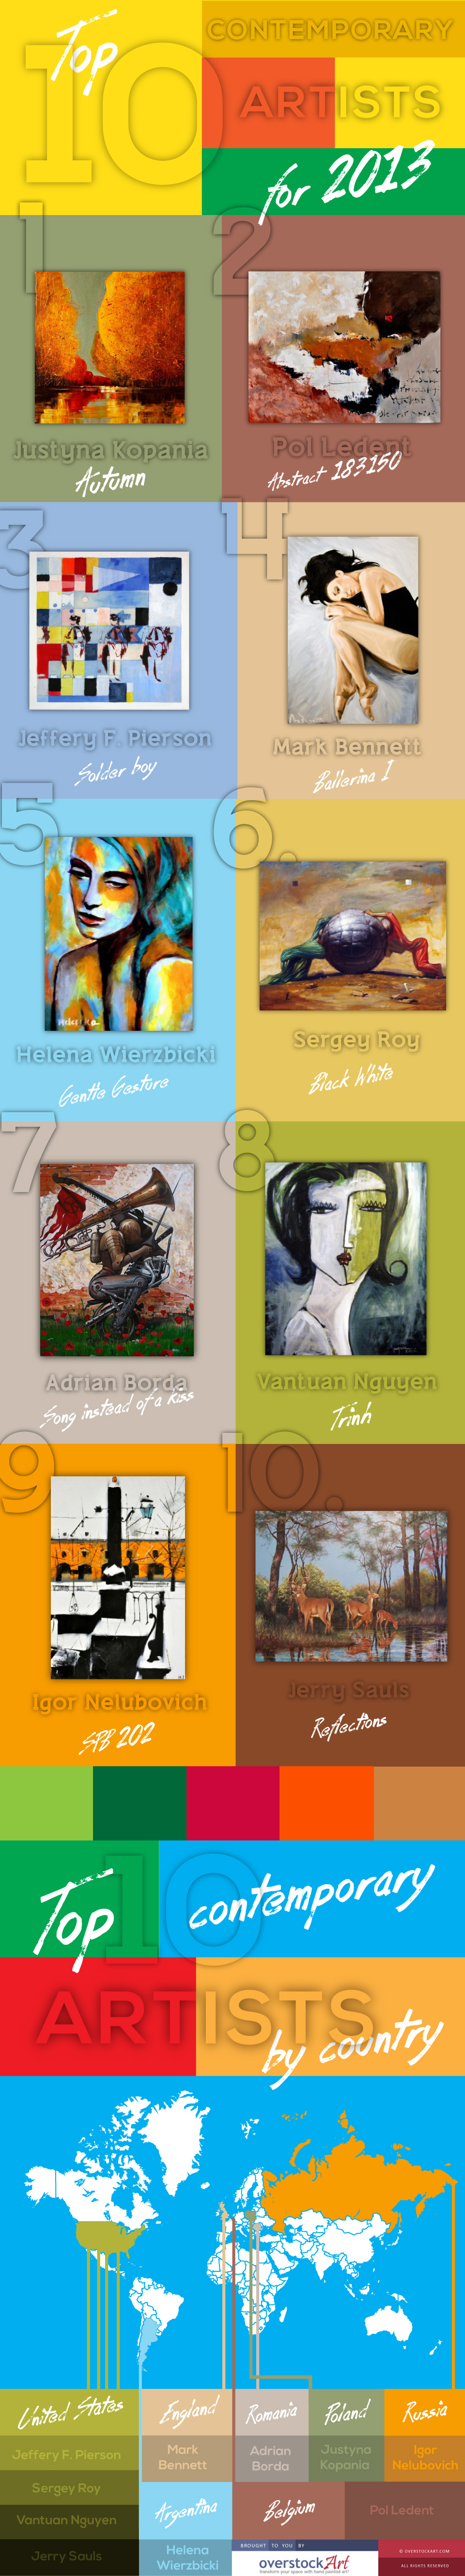 Most Popular Contemporary Artists artist become releases top 10 contemporary artists of 2013